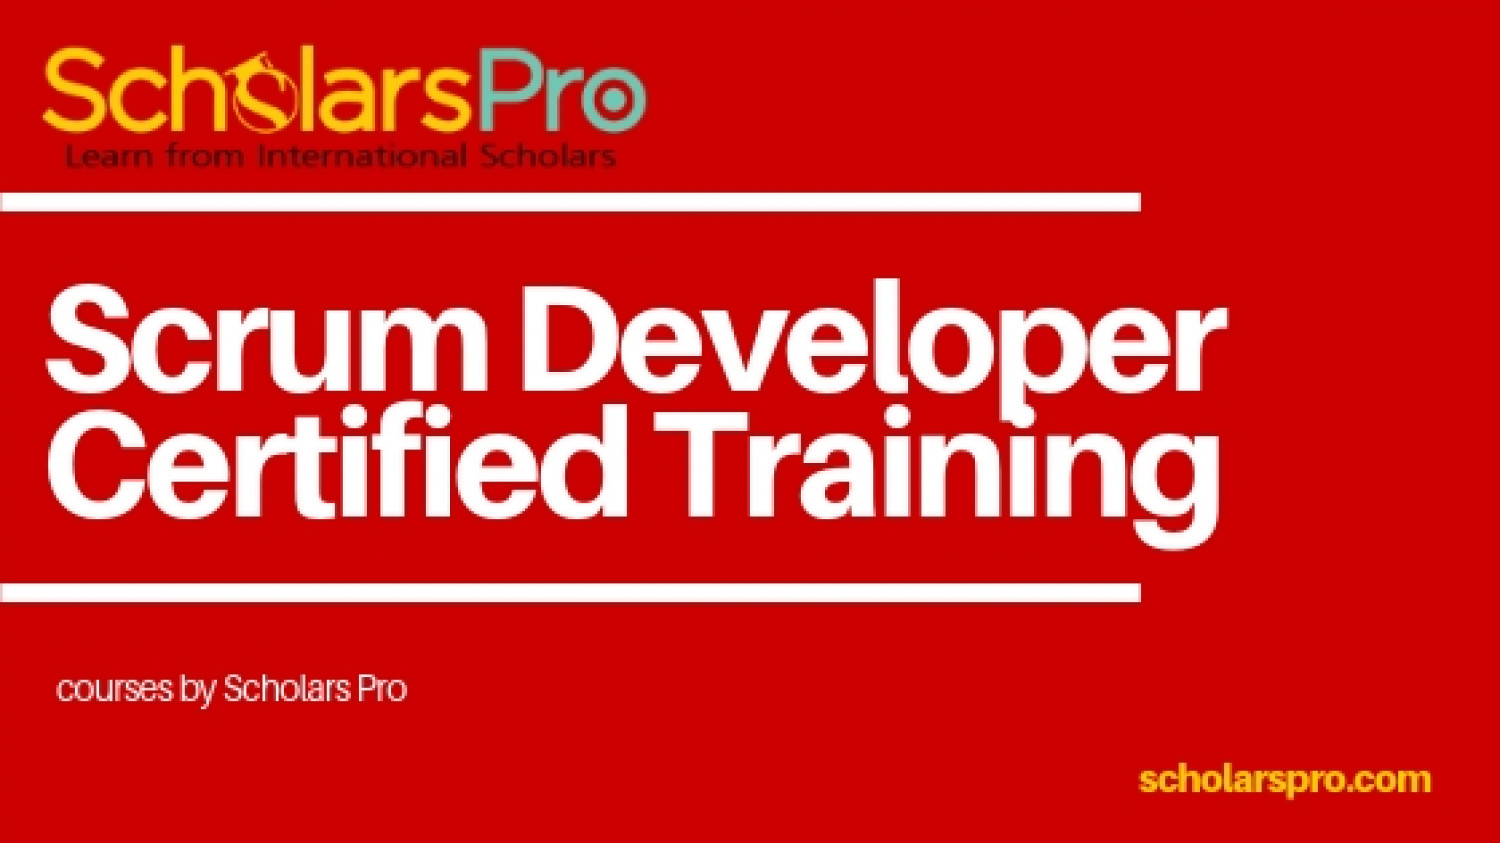 Scrum Developer Certified Training Infographic